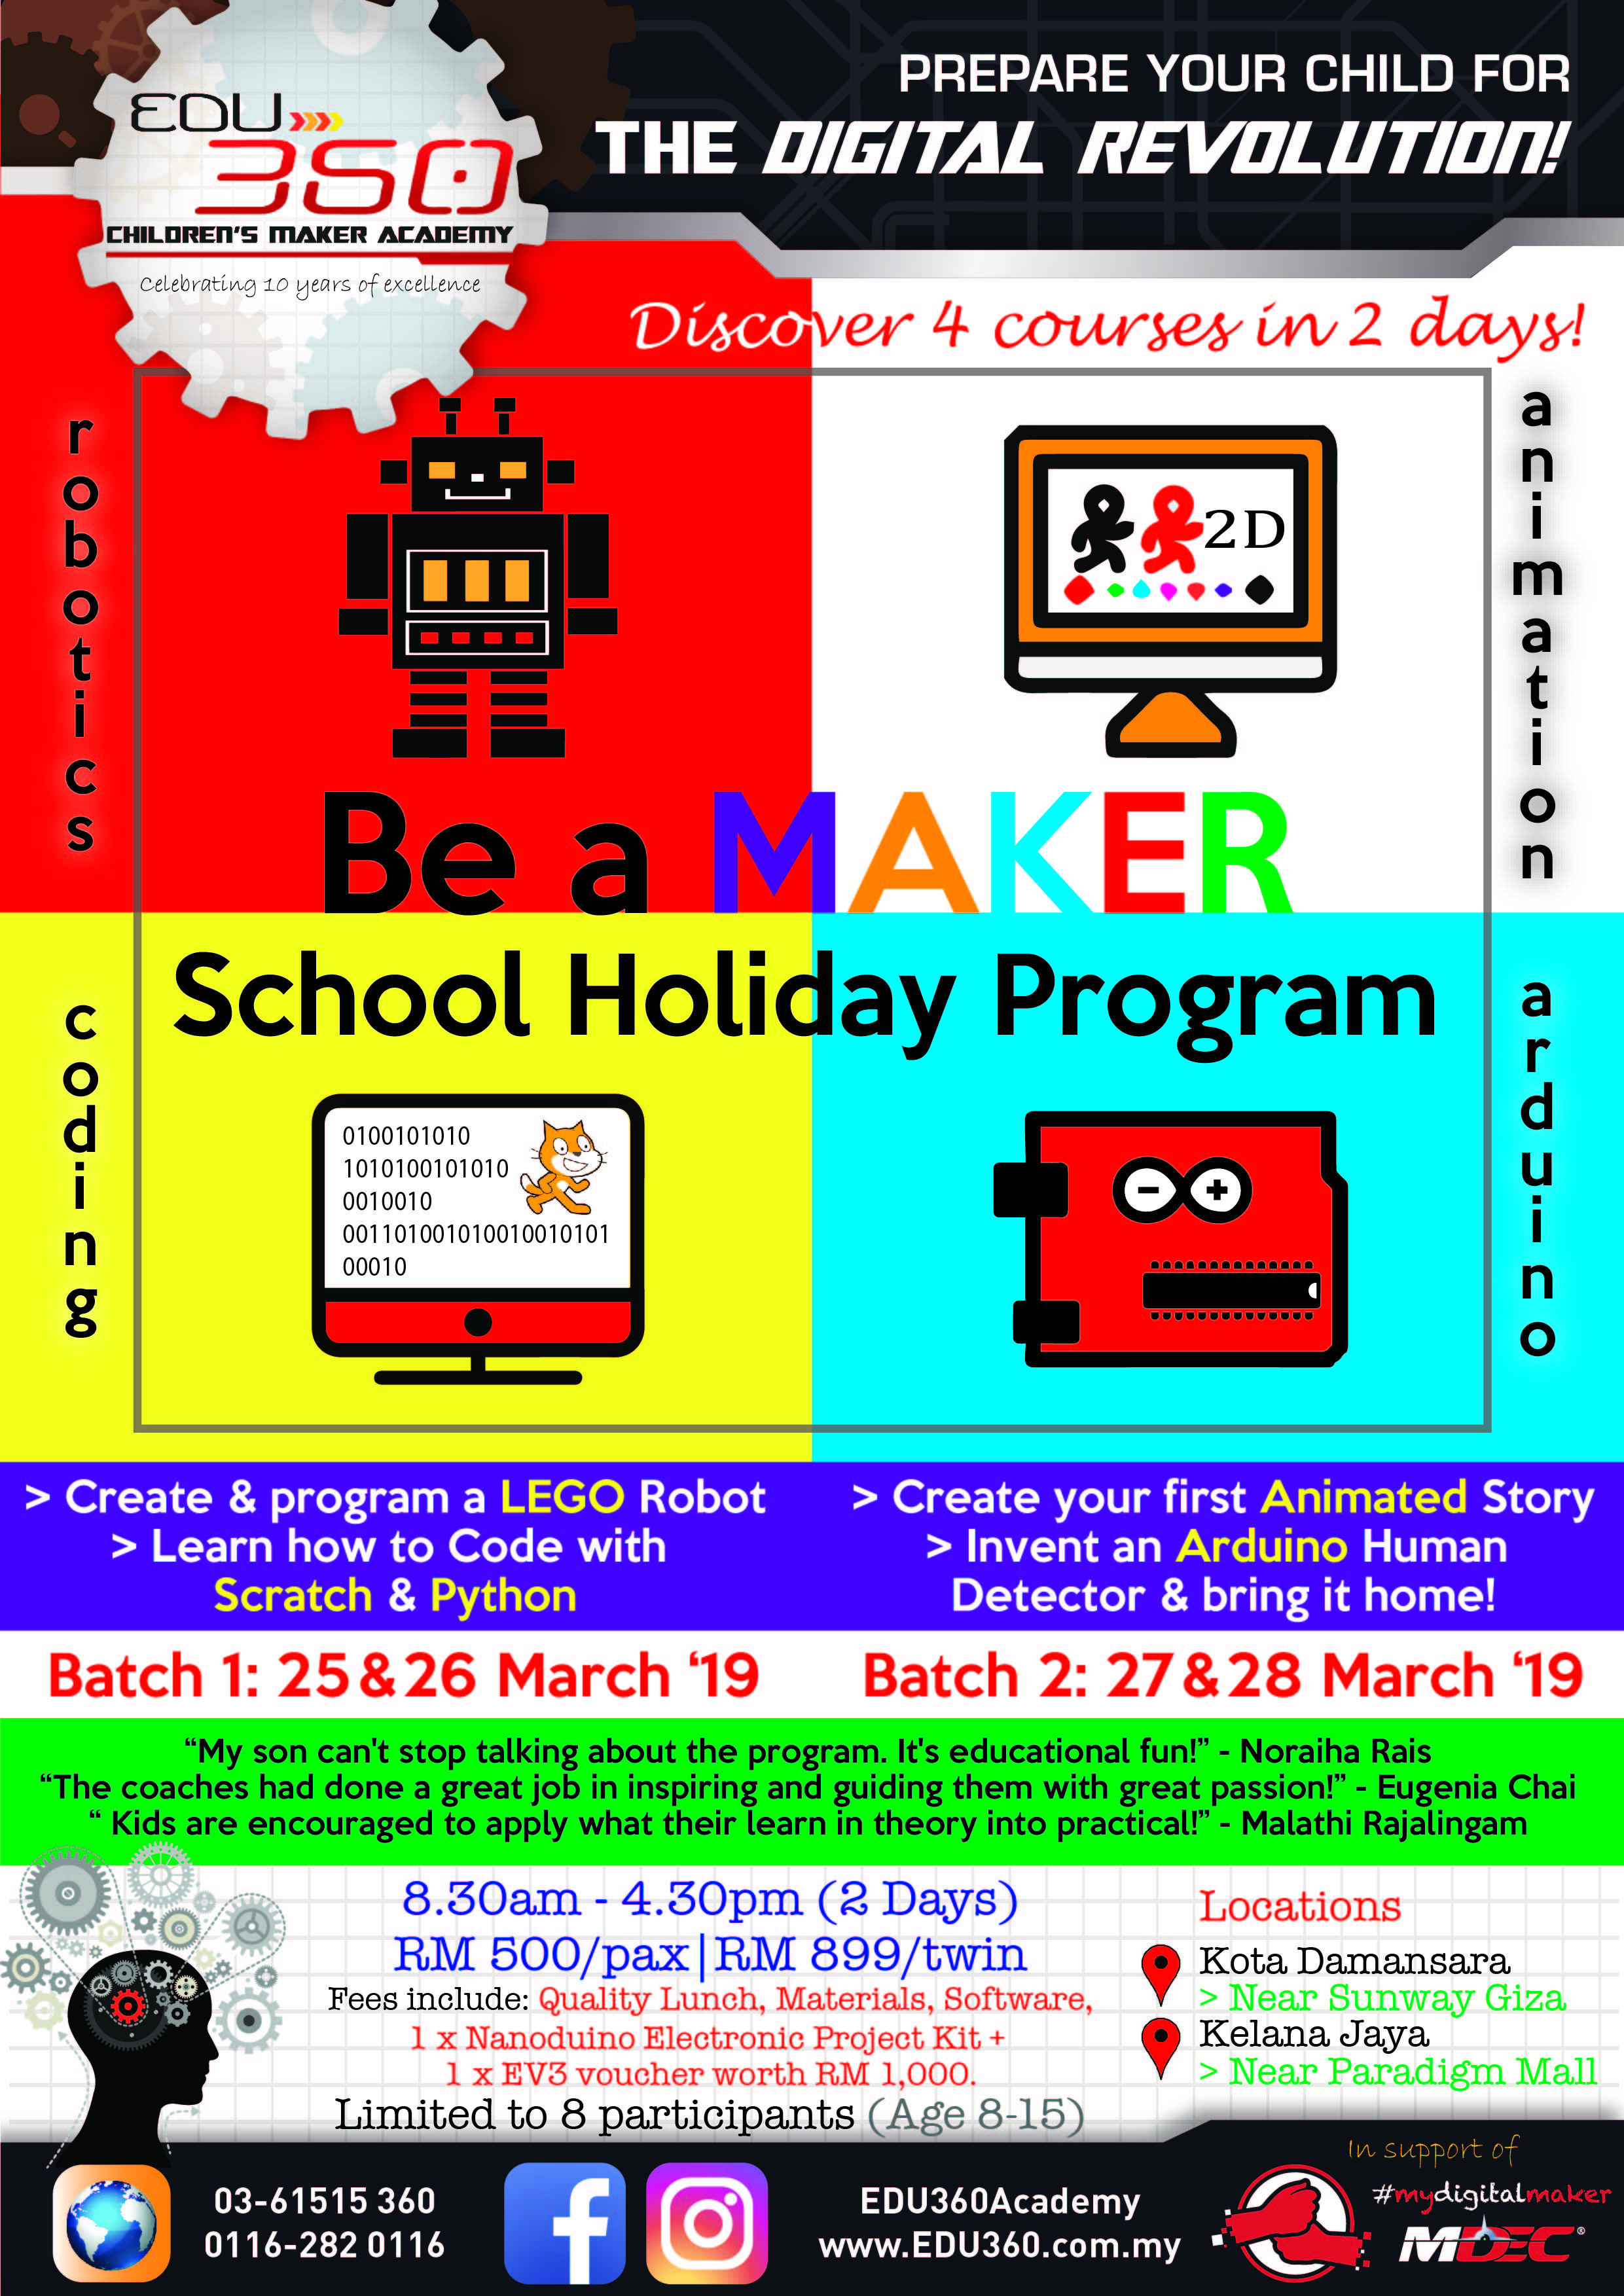 March Malaysia kids School Holiday Program Stem class learning technology computational science workshop